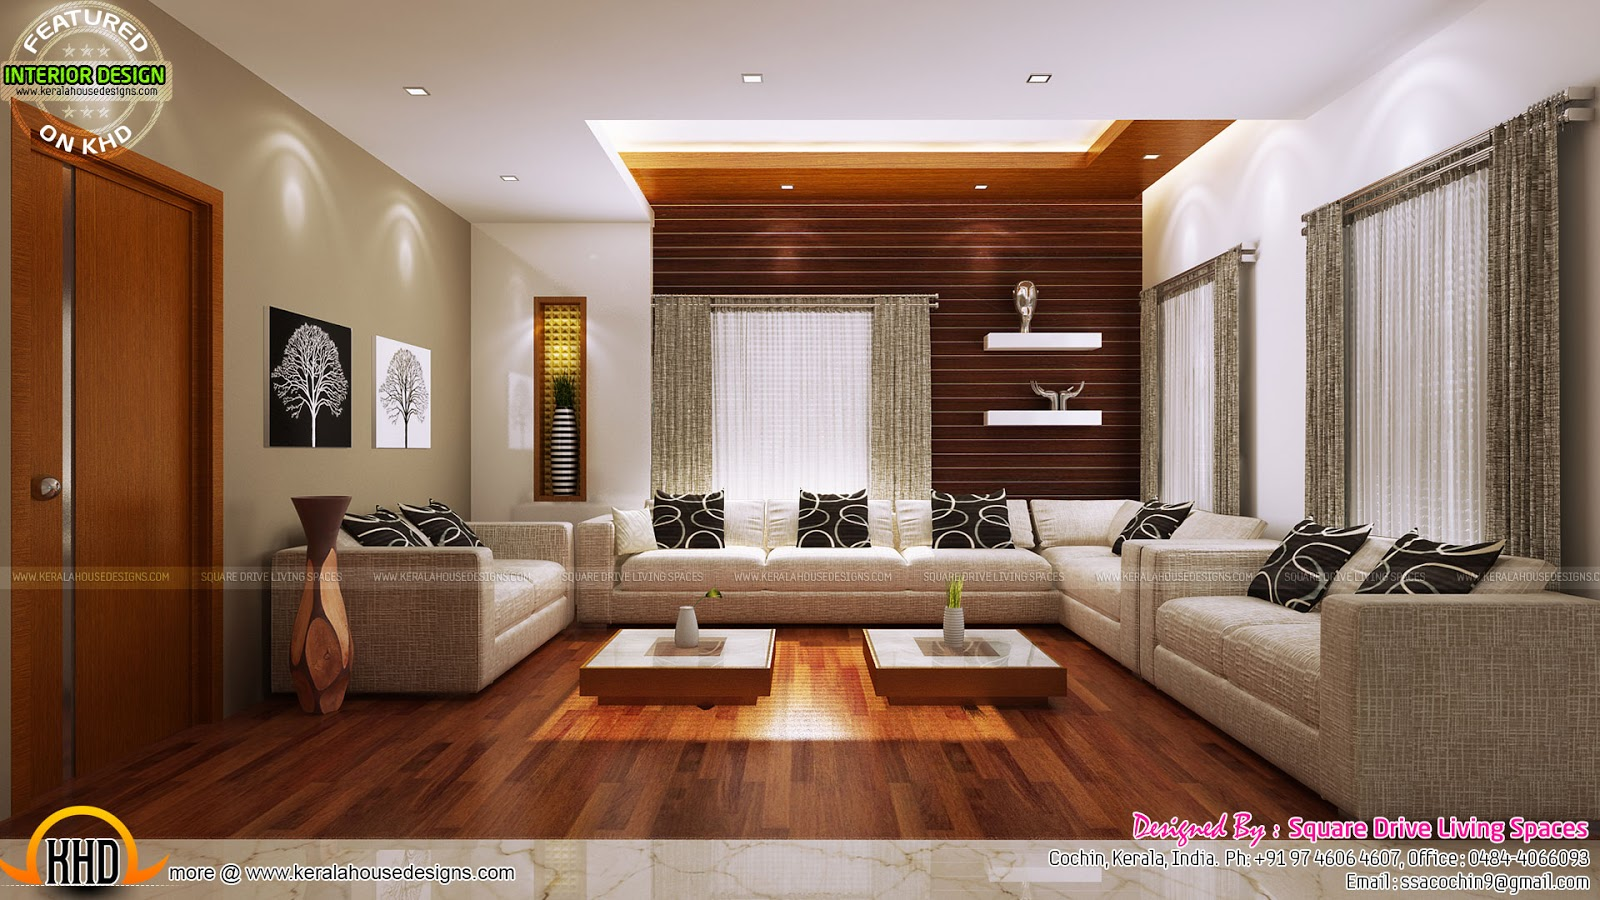 Excellent kerala interior design kerala home design and for Interior designs images